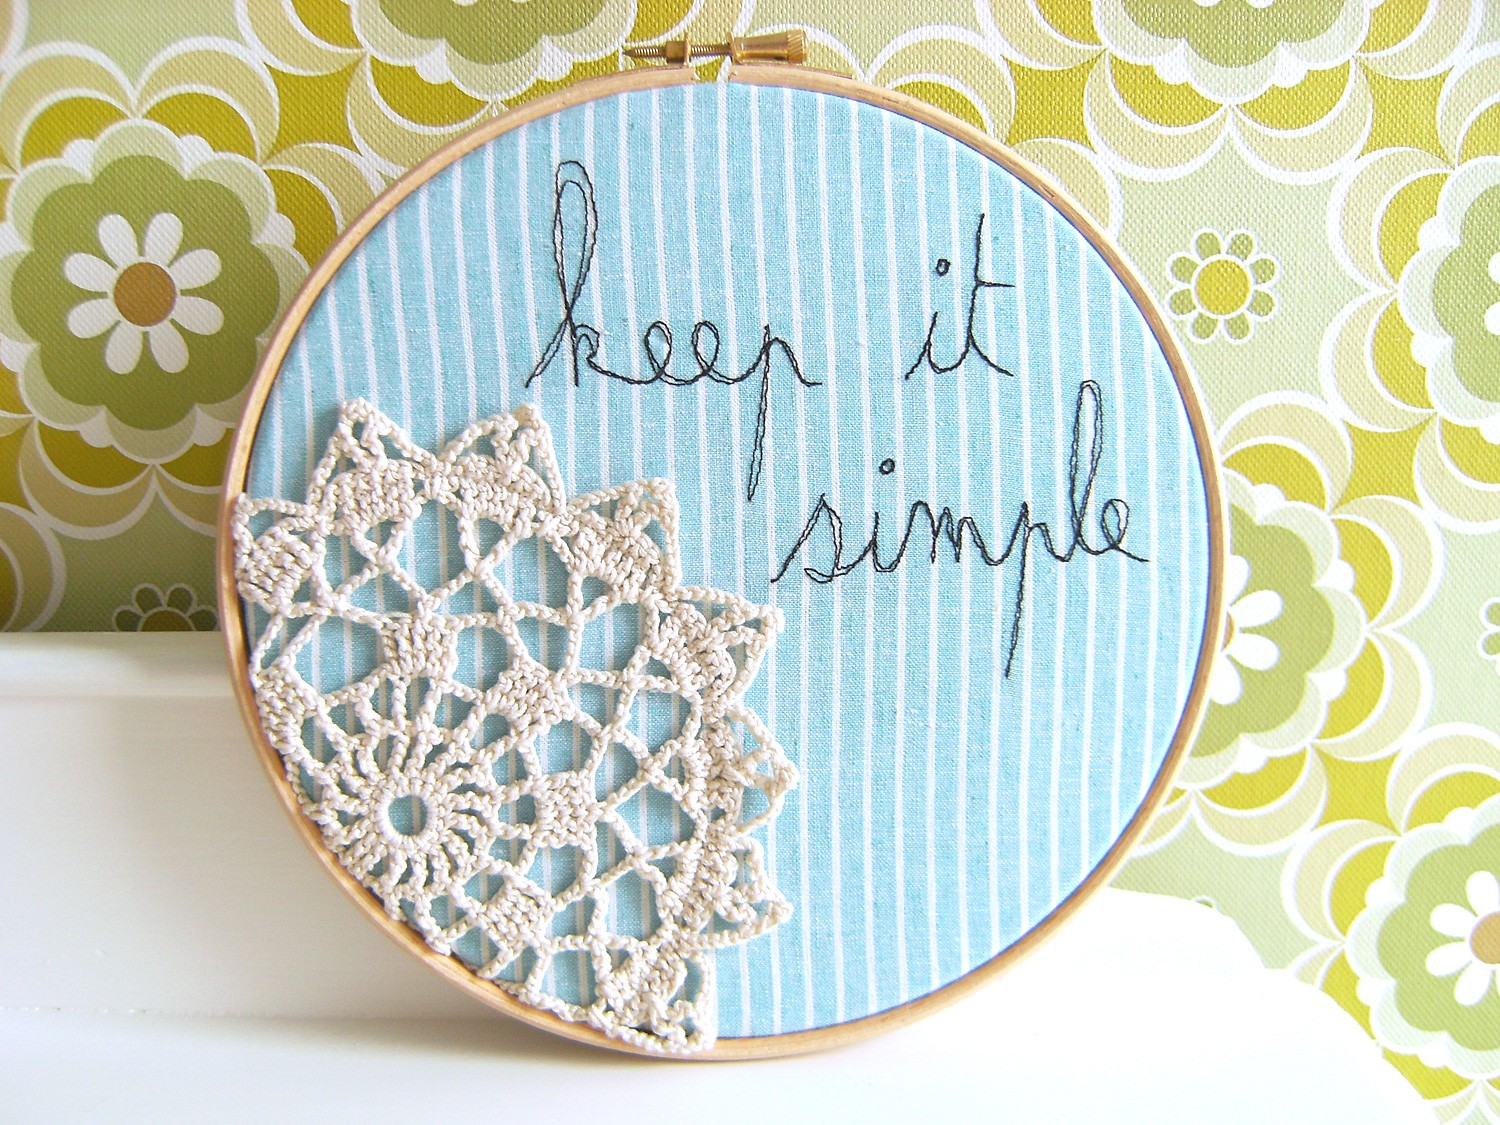 In the hoop embroidery designs « origami